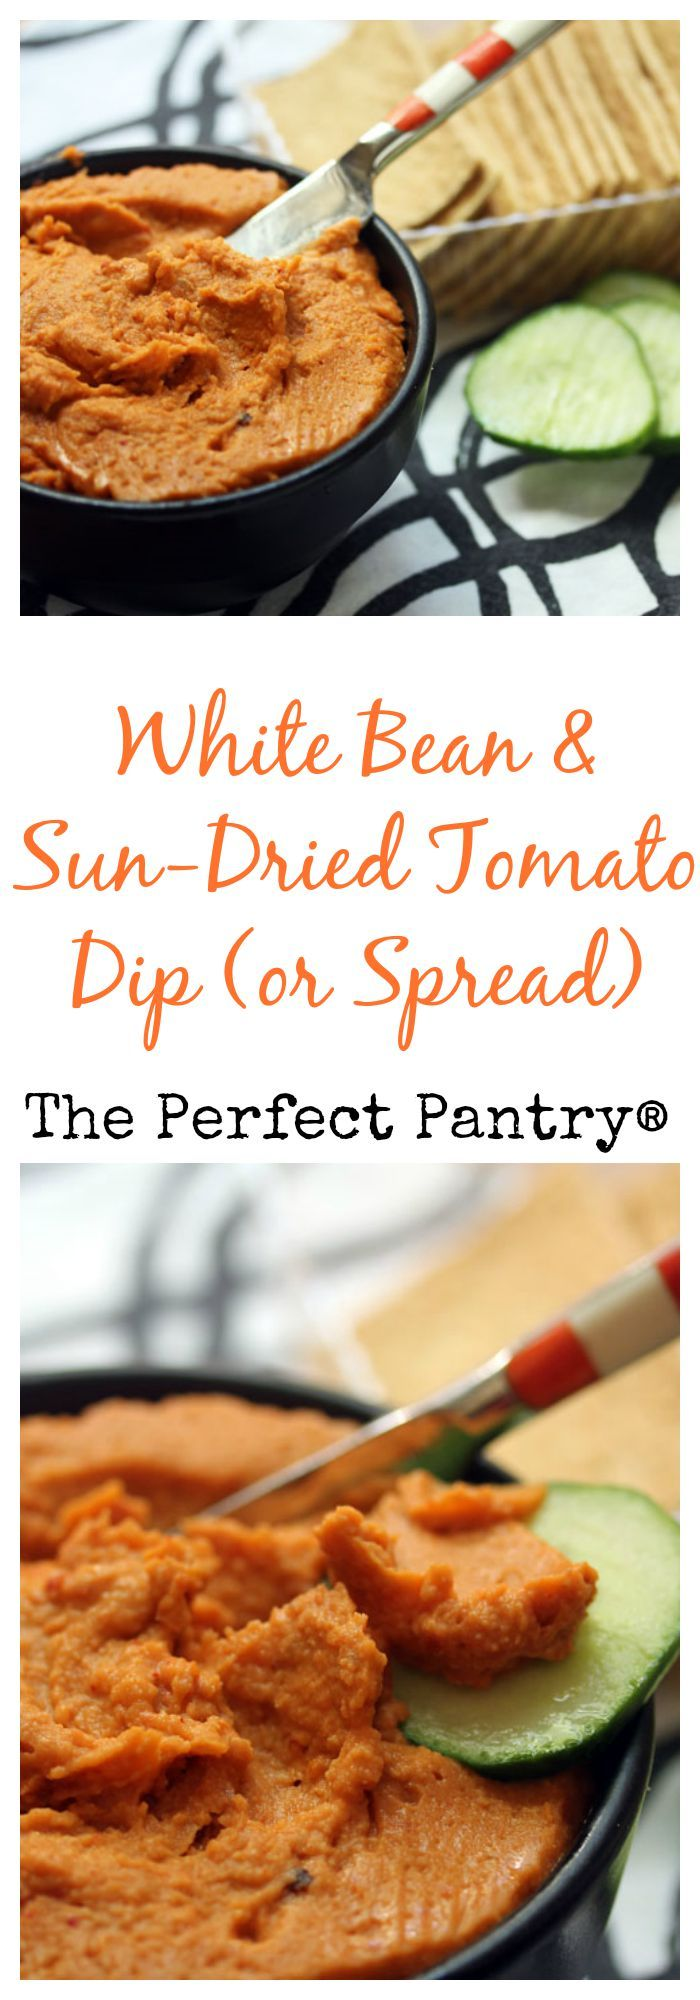 White bean and sun-dried tomato dip also makes a great sandwich spread! From The Perfect Pantry. #vegan #glutenfree